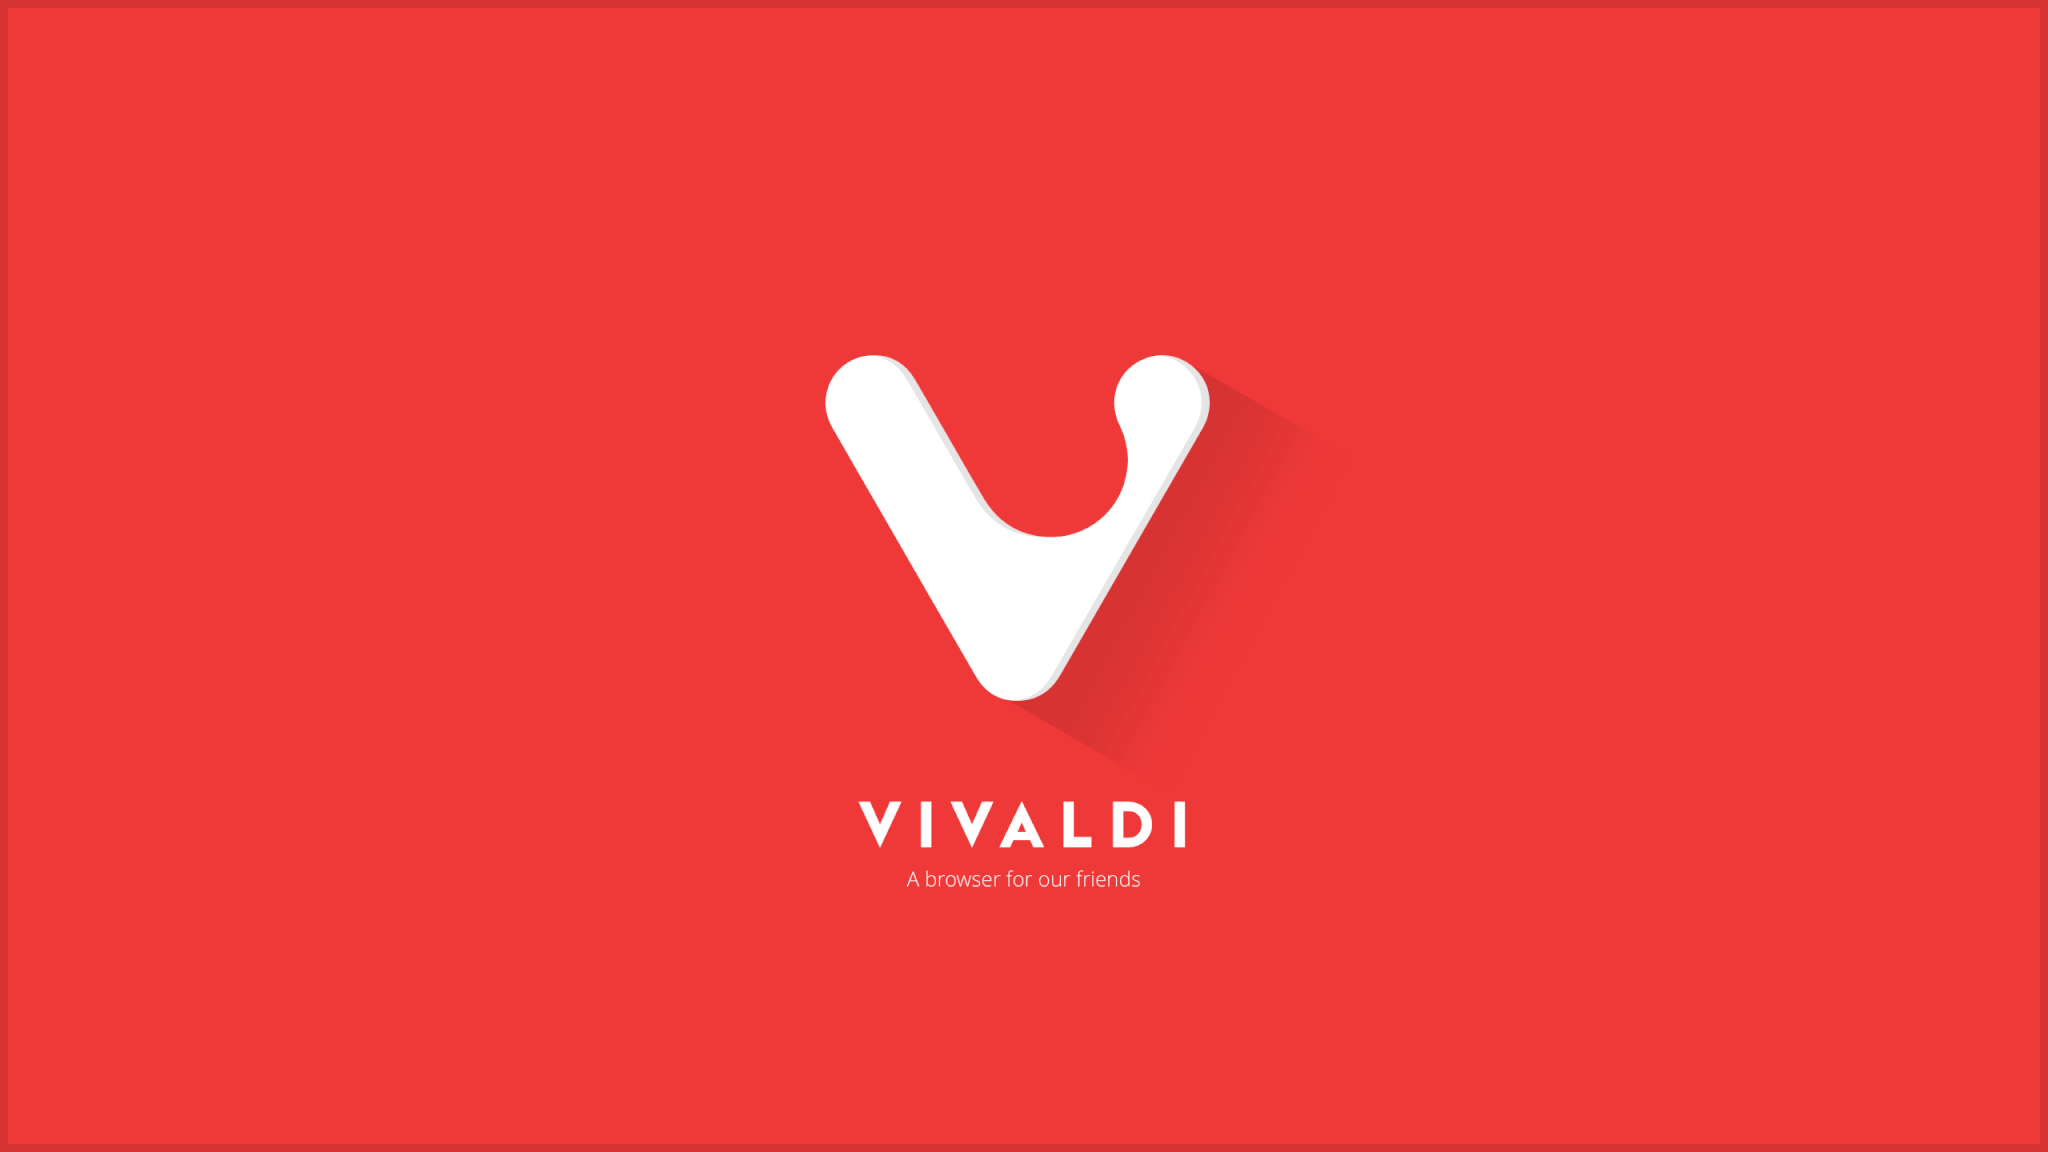 vivaldi red - Review: Vivaldi, o novo browser do criador do Opera